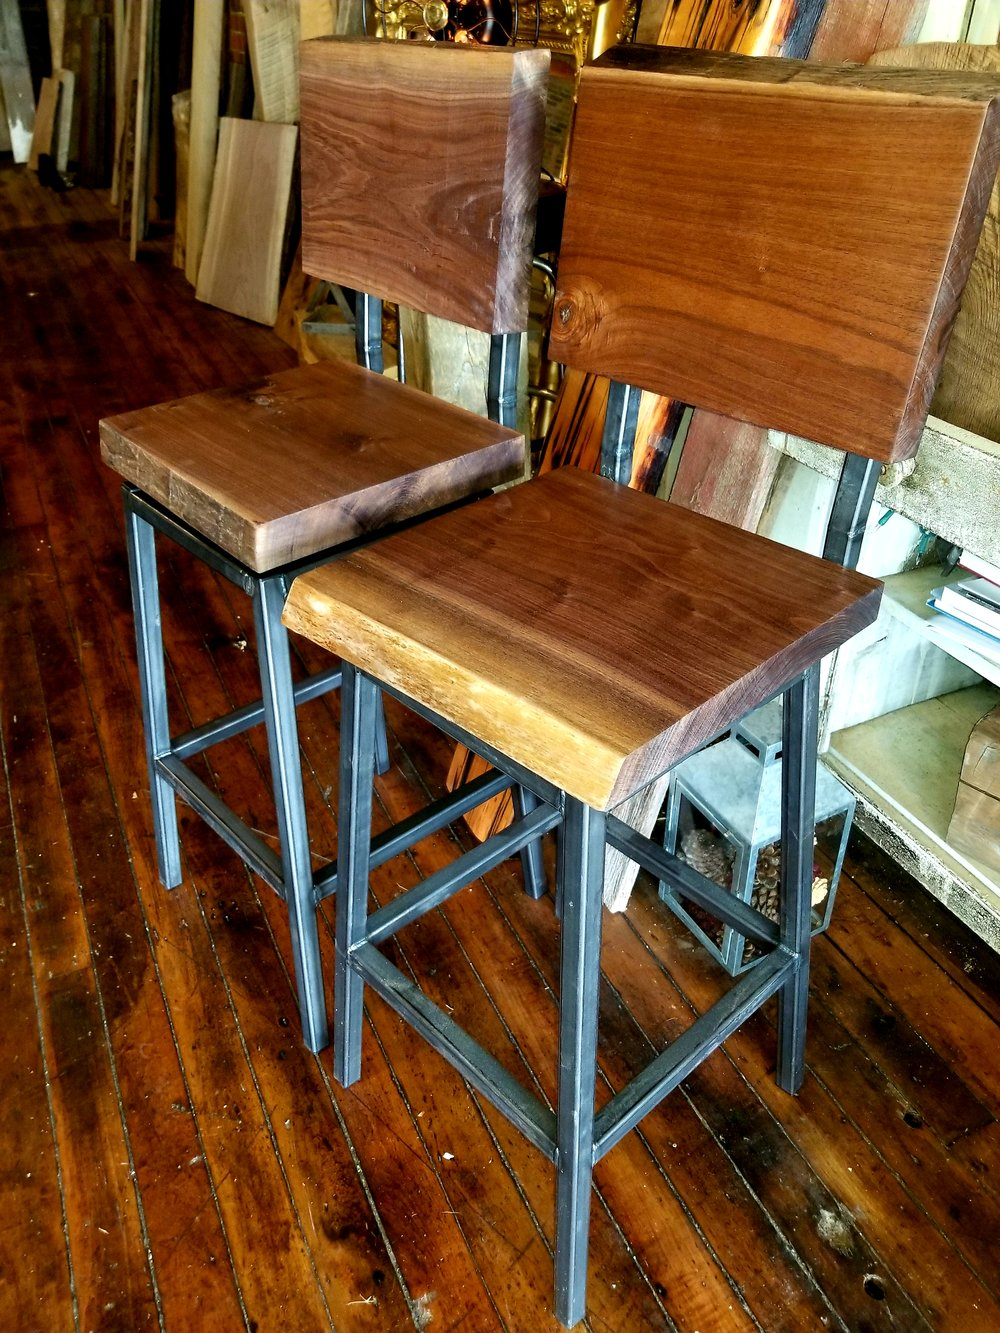 Design your own stools: Stationary or Swivel